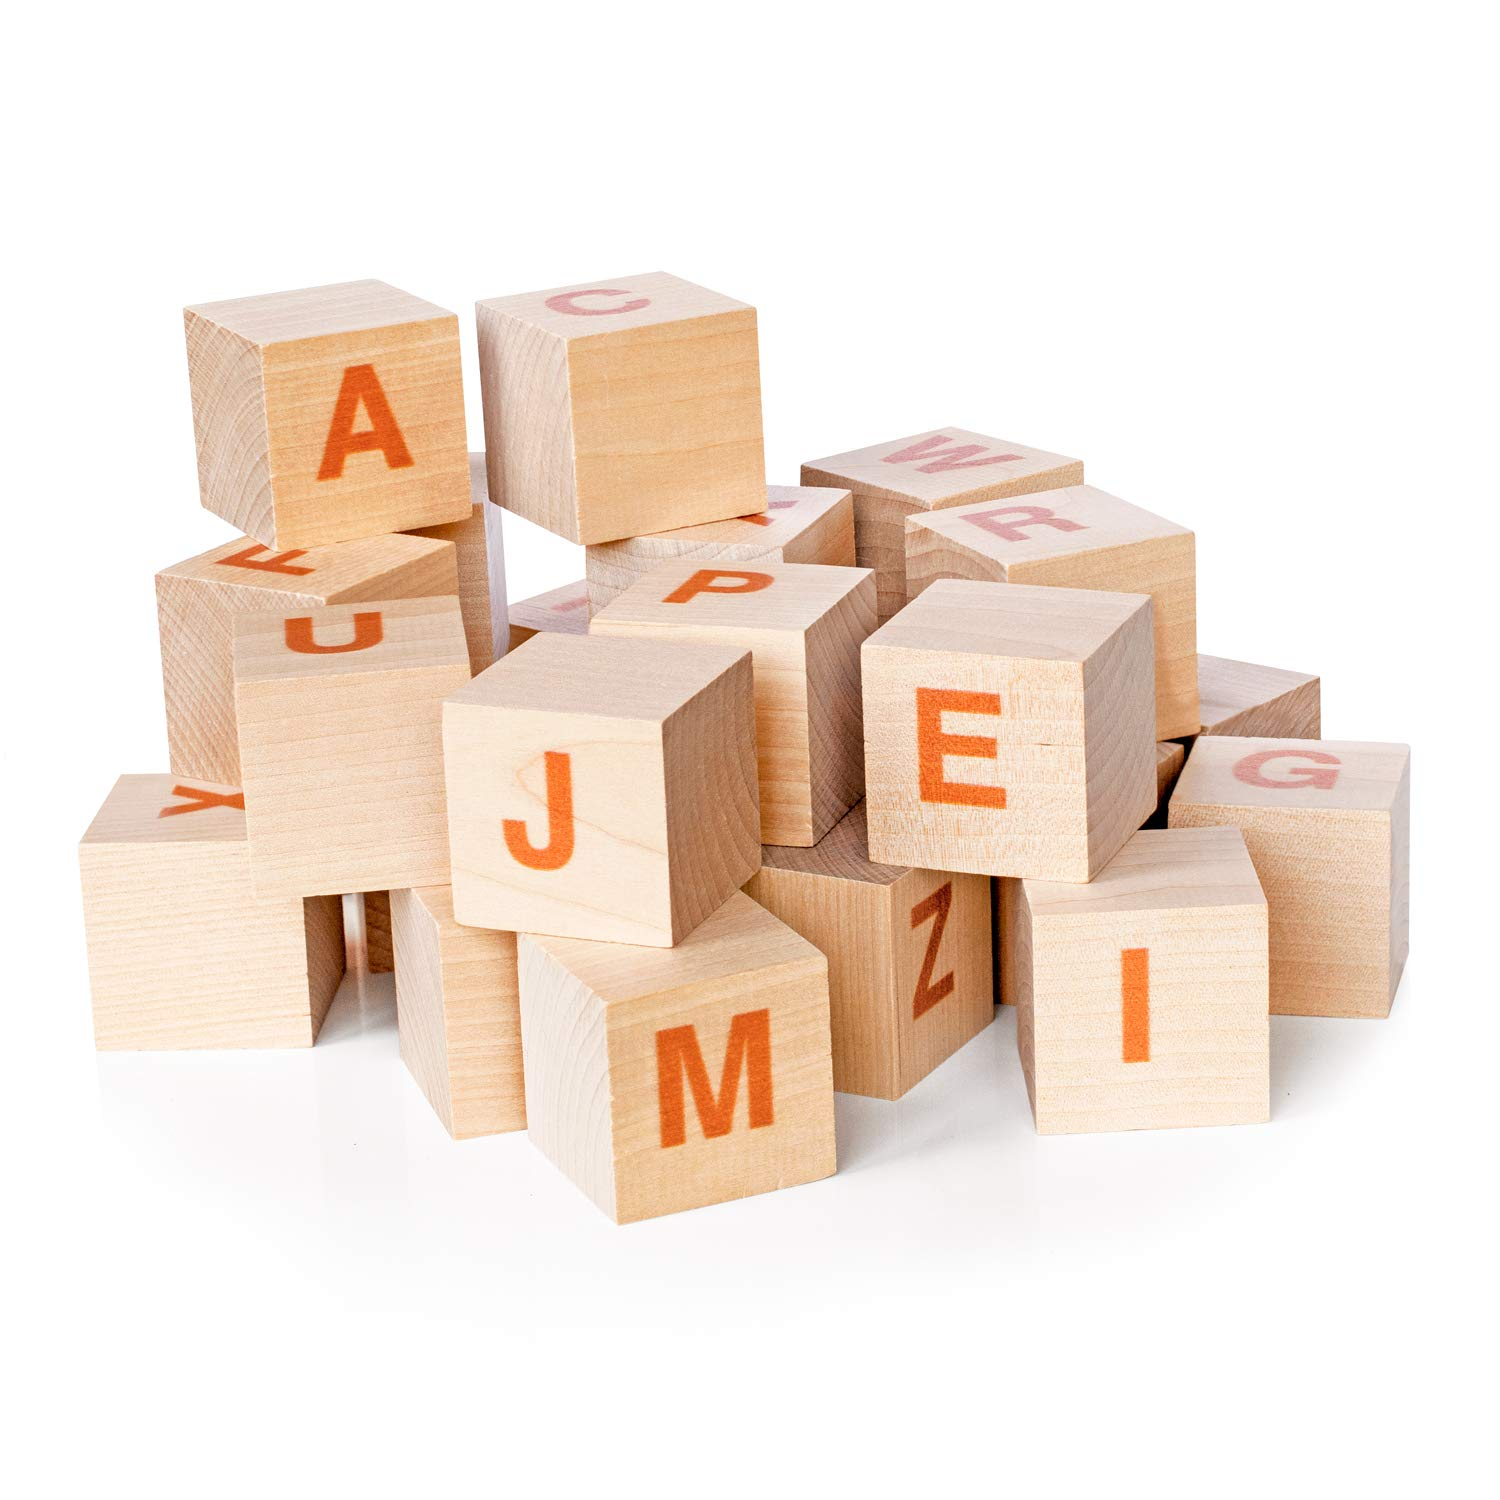 Perfect for Any Toddler Great for Early Brain Development Constructed Out of Organic Hardwood Stacking Blocks XL Size Modern Helvetica Print Baby Alphabet Letters